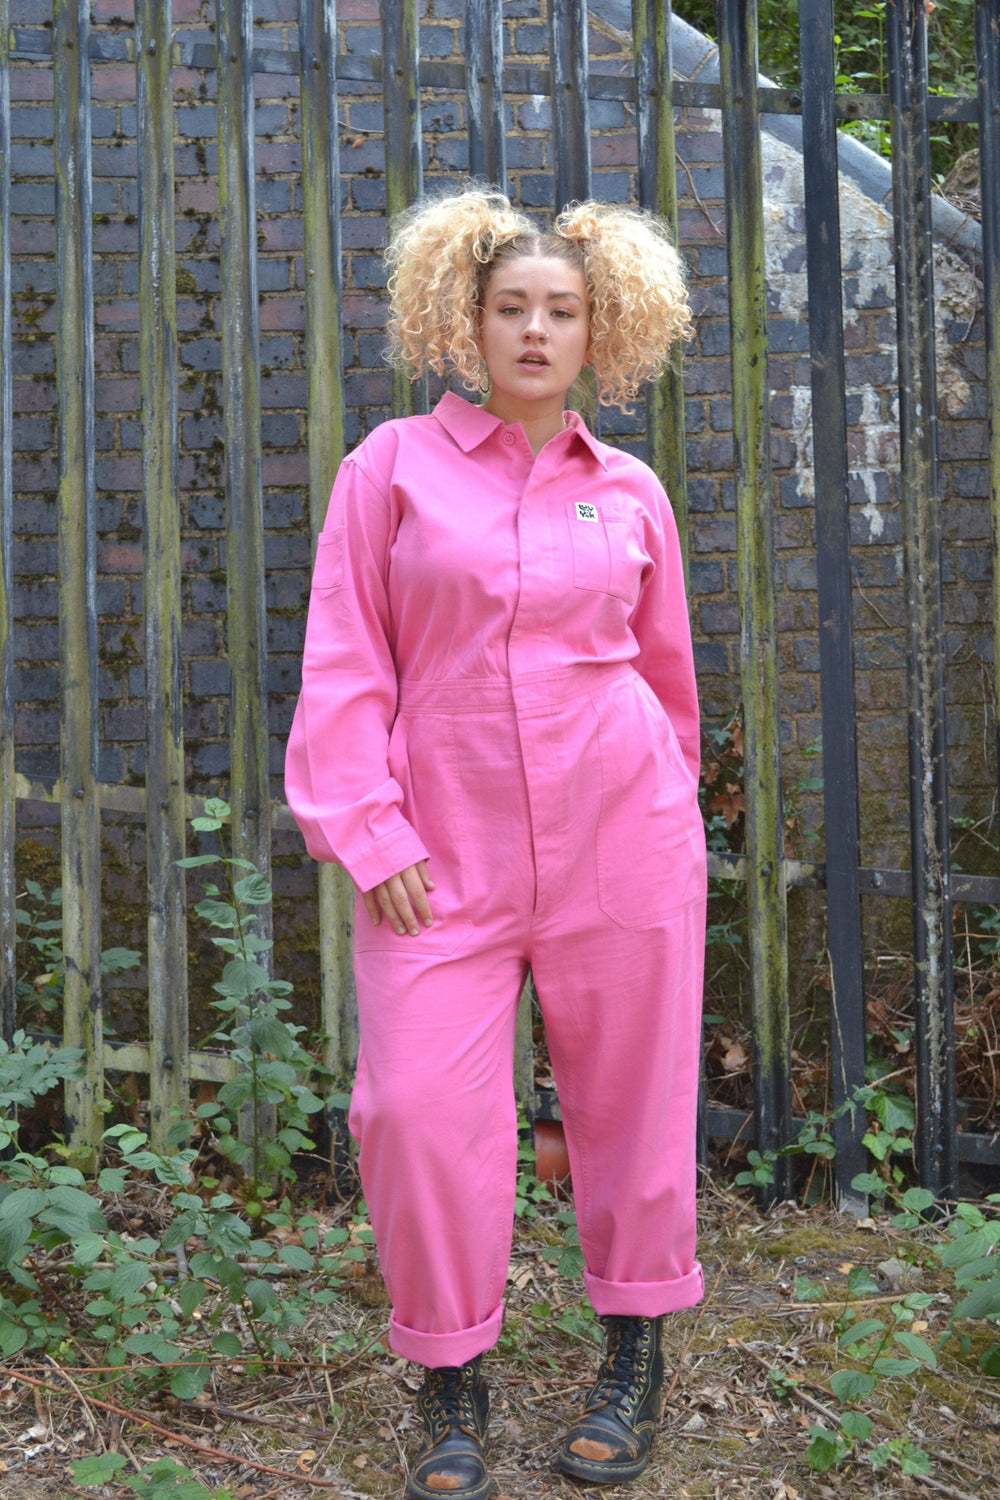 Lucy & Yak Boilersuit Carmen 100% Organic Cotton Boilersuit in Bubblegum Pink